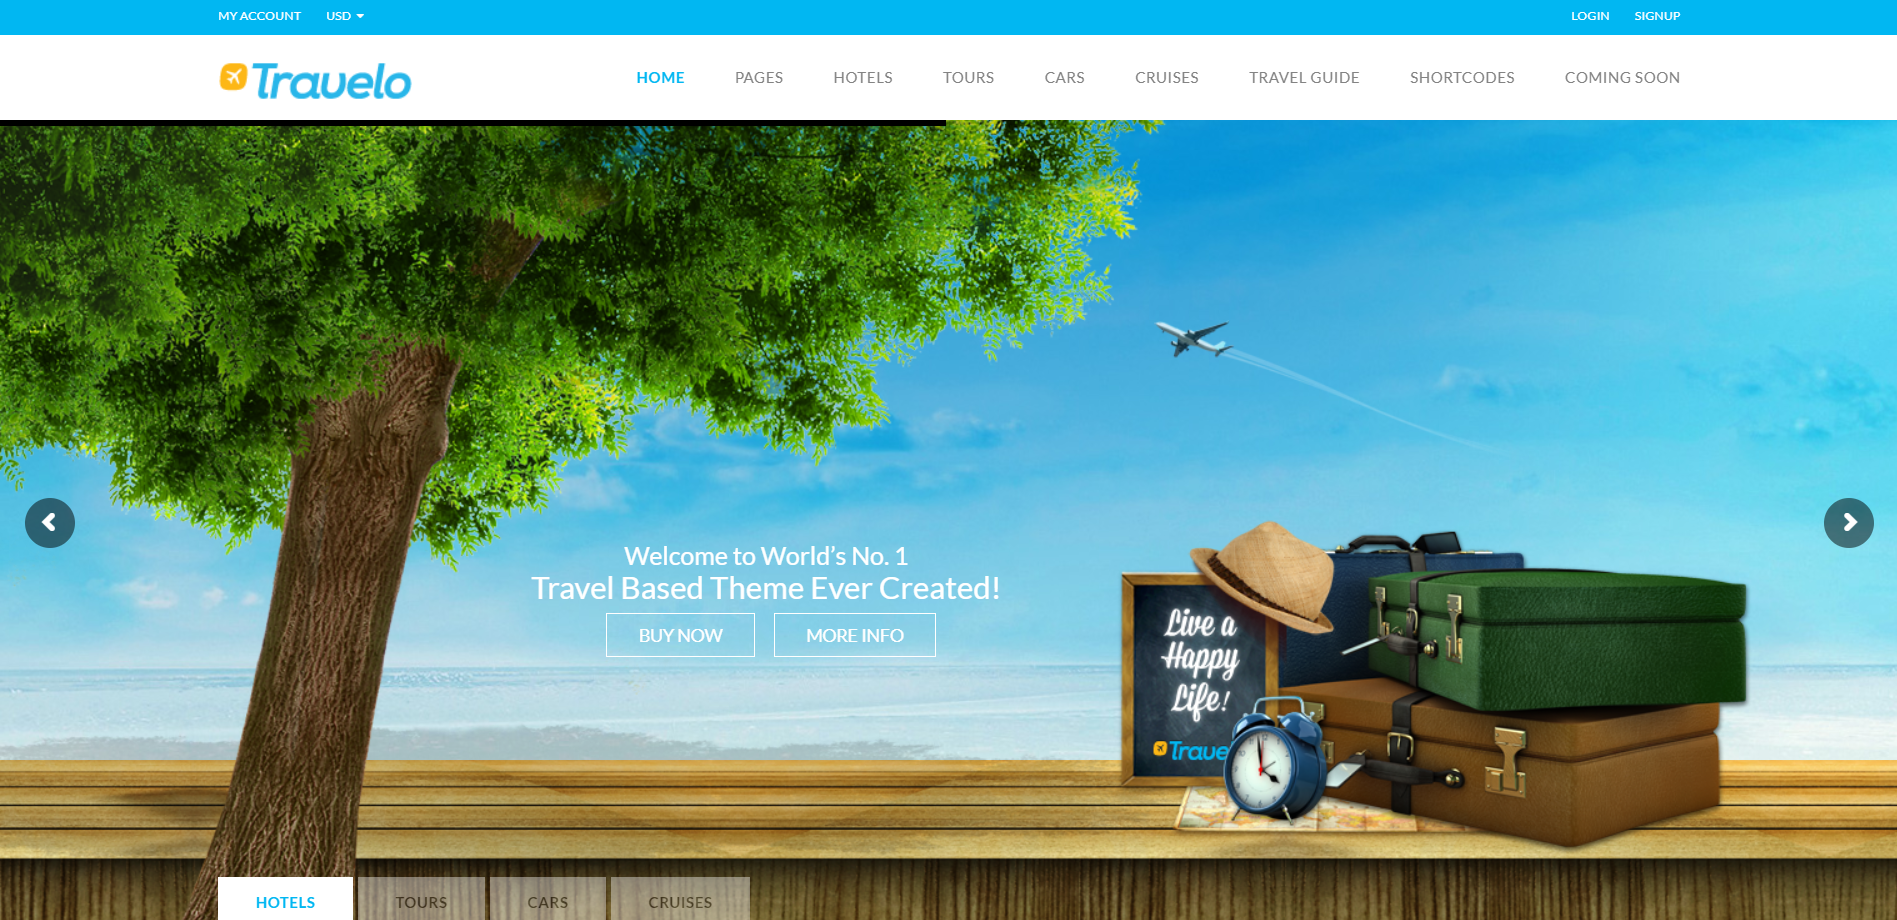 50. Travelo - TravelTourCar RetailCruise Booking WordPress Theme